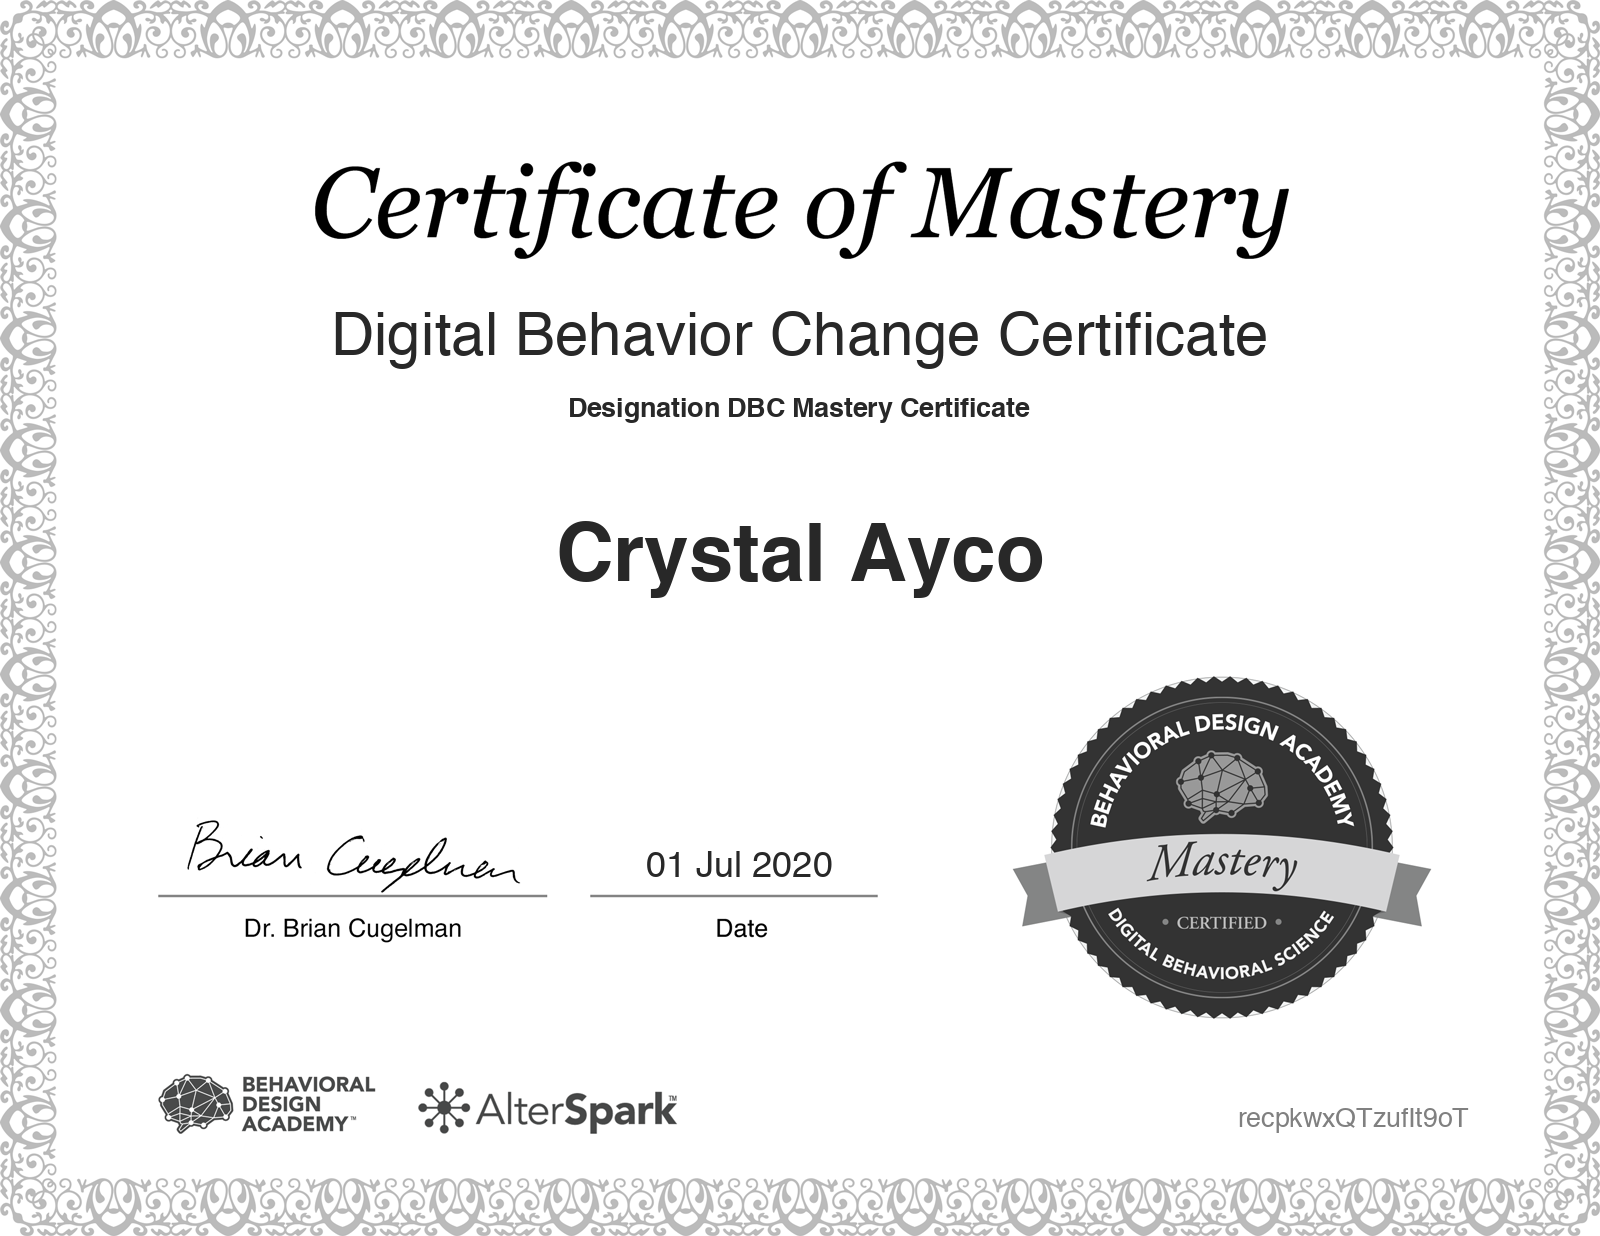 Digital Behavior Change Certificate